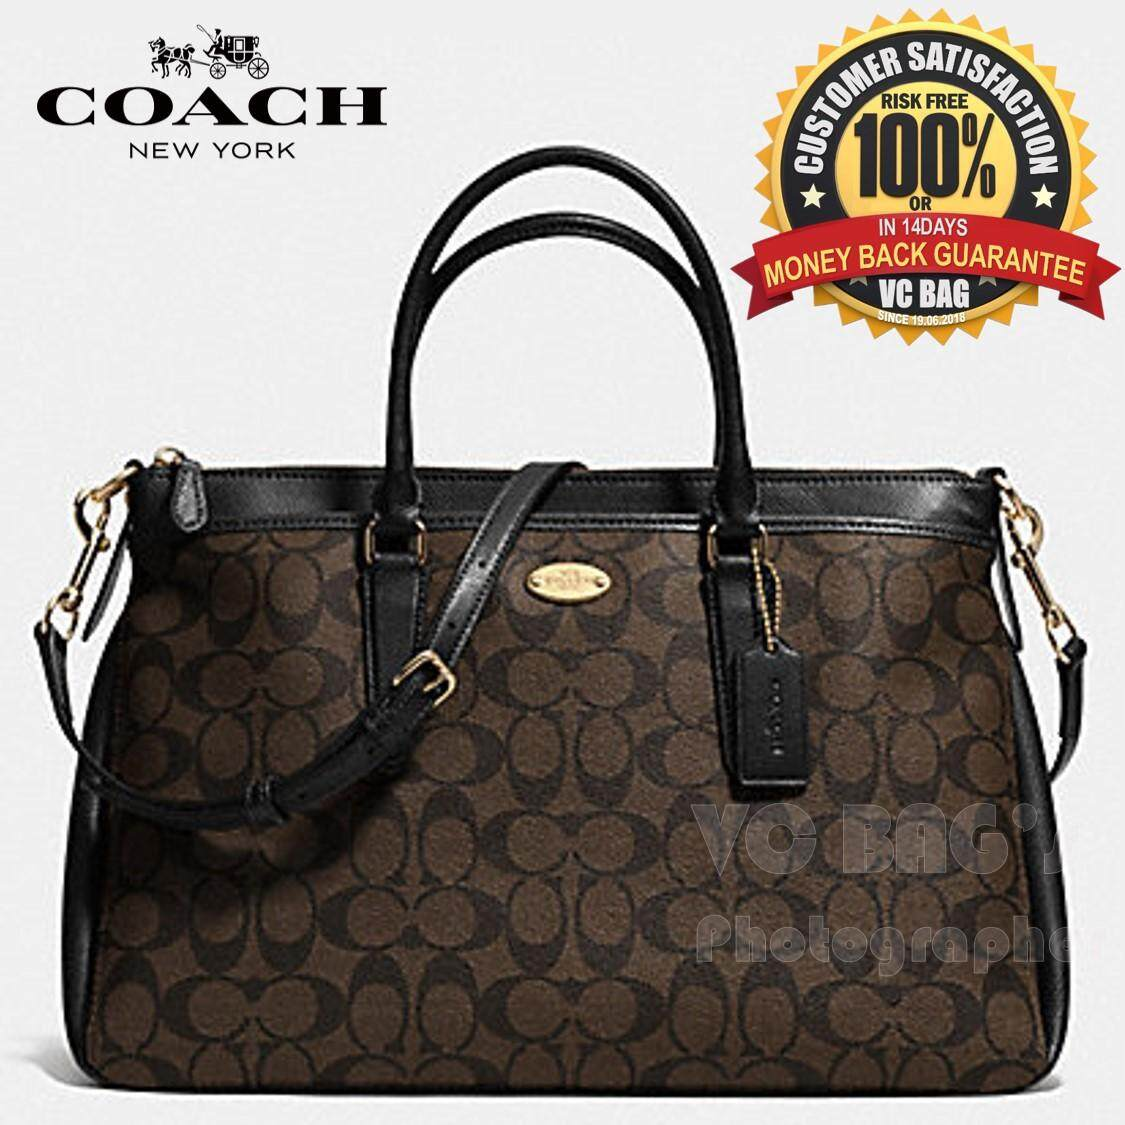 1ff636bc2b ... new zealand coach f34617 morgan satchel in signature bag light gold  brown black 2c8c7 62590